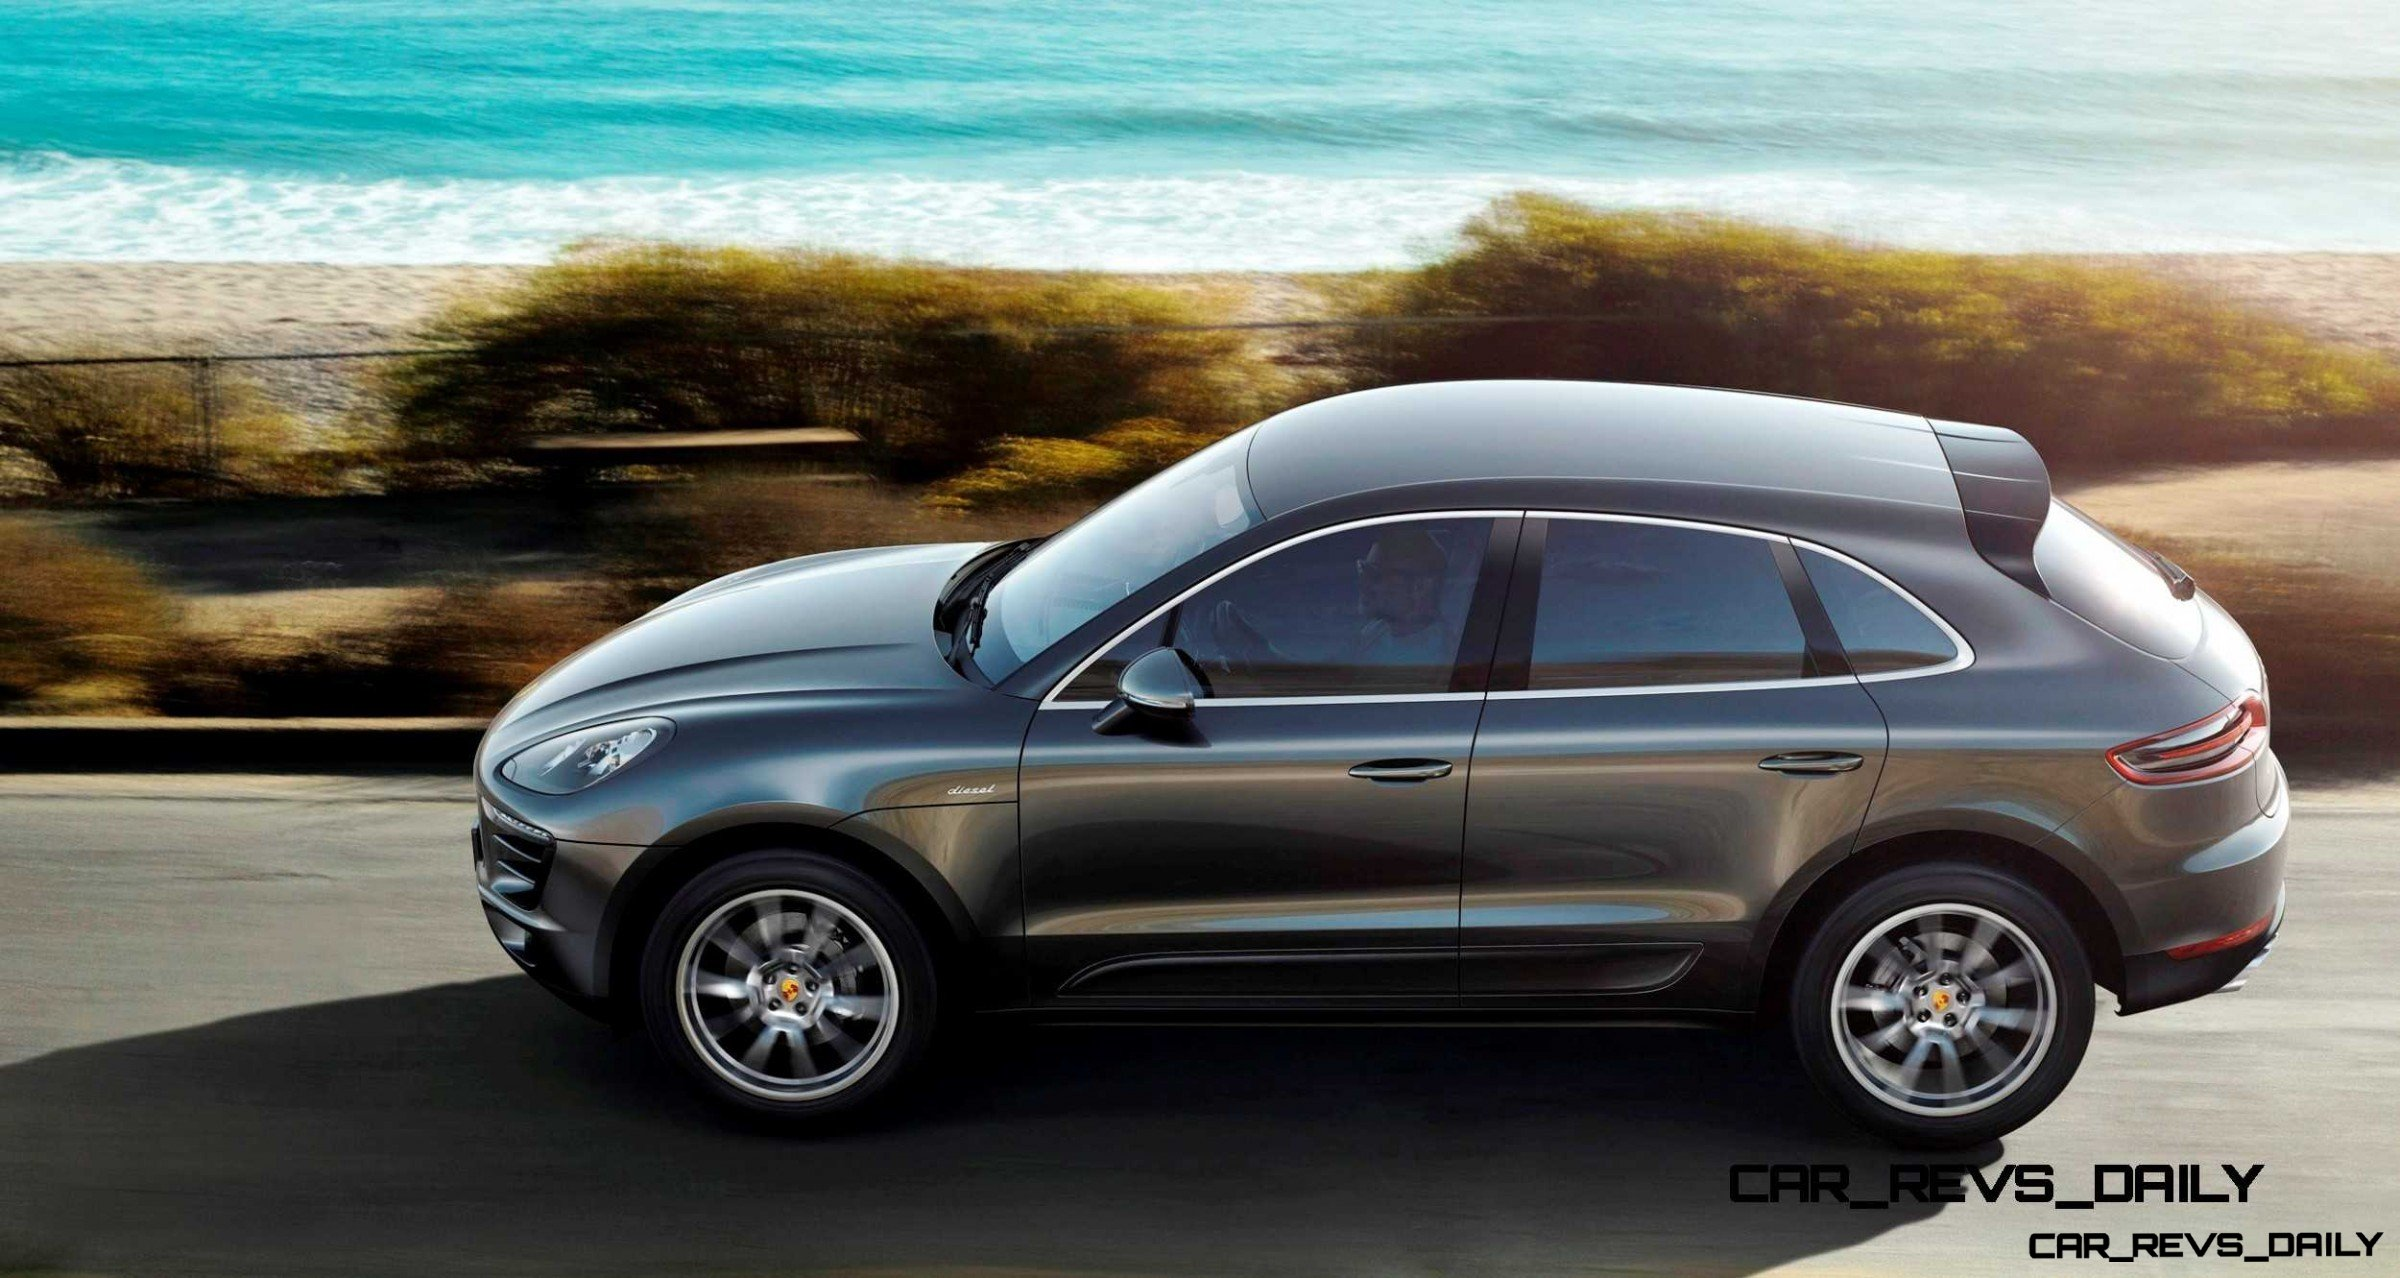 2014 Porsche Macan Turbo and Macan S - Official Debut Photos11